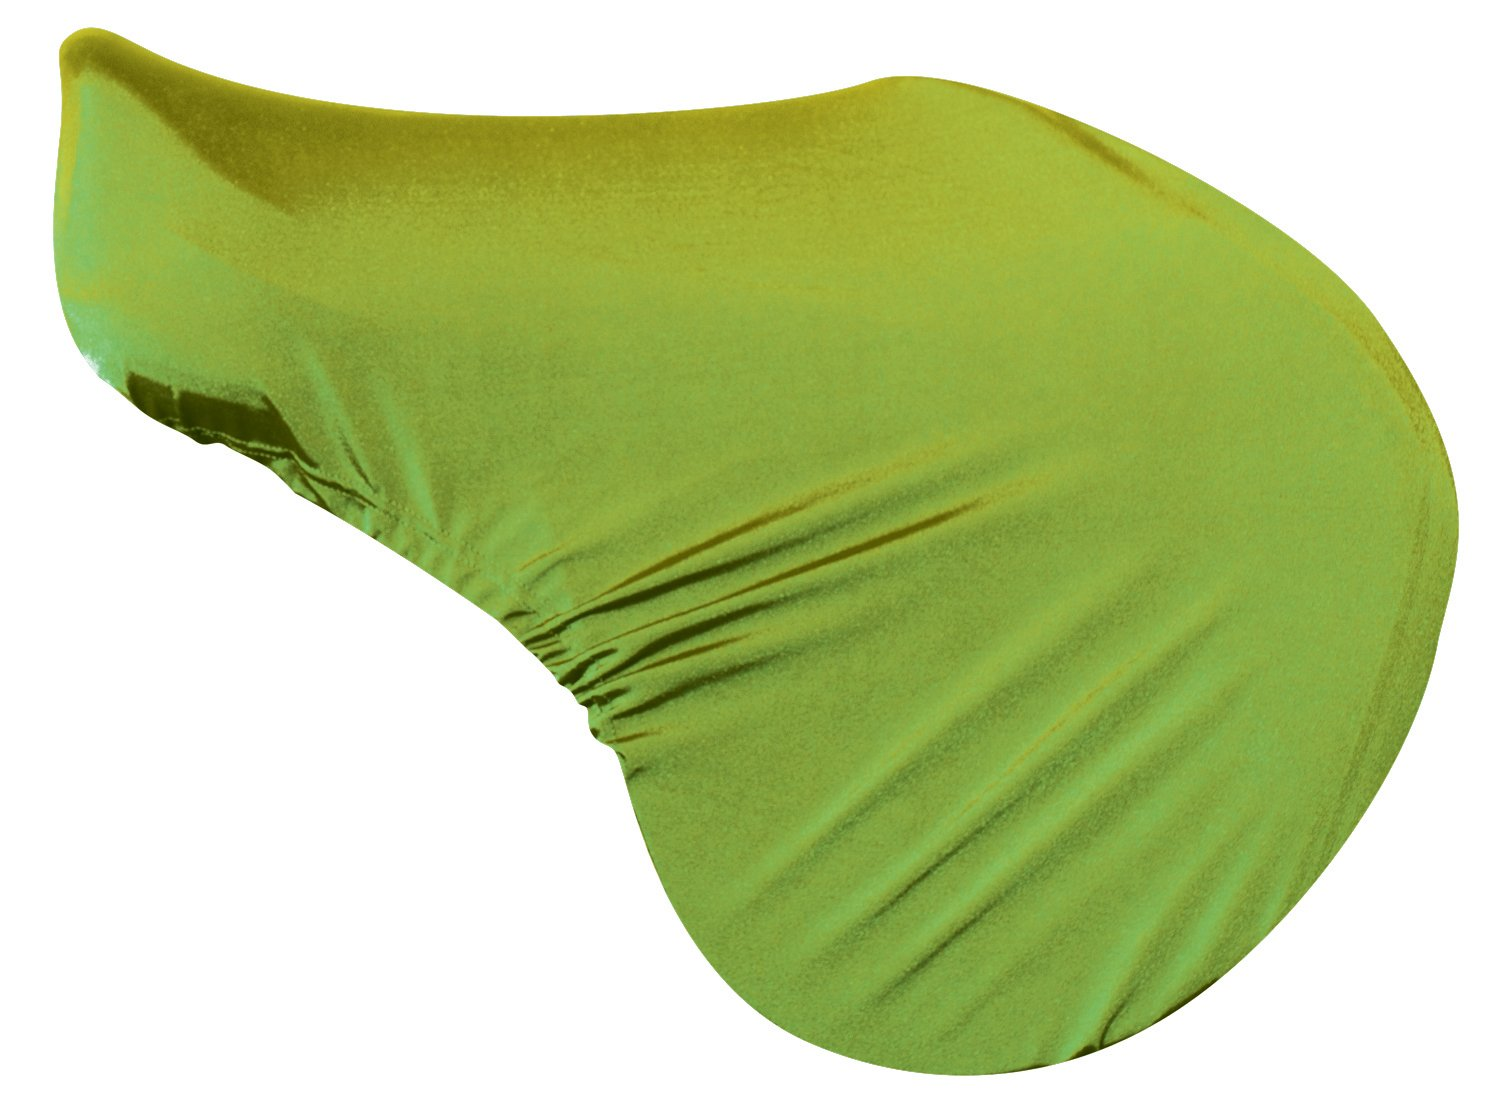 Lime Green Perri's Lycra Saddle Cover